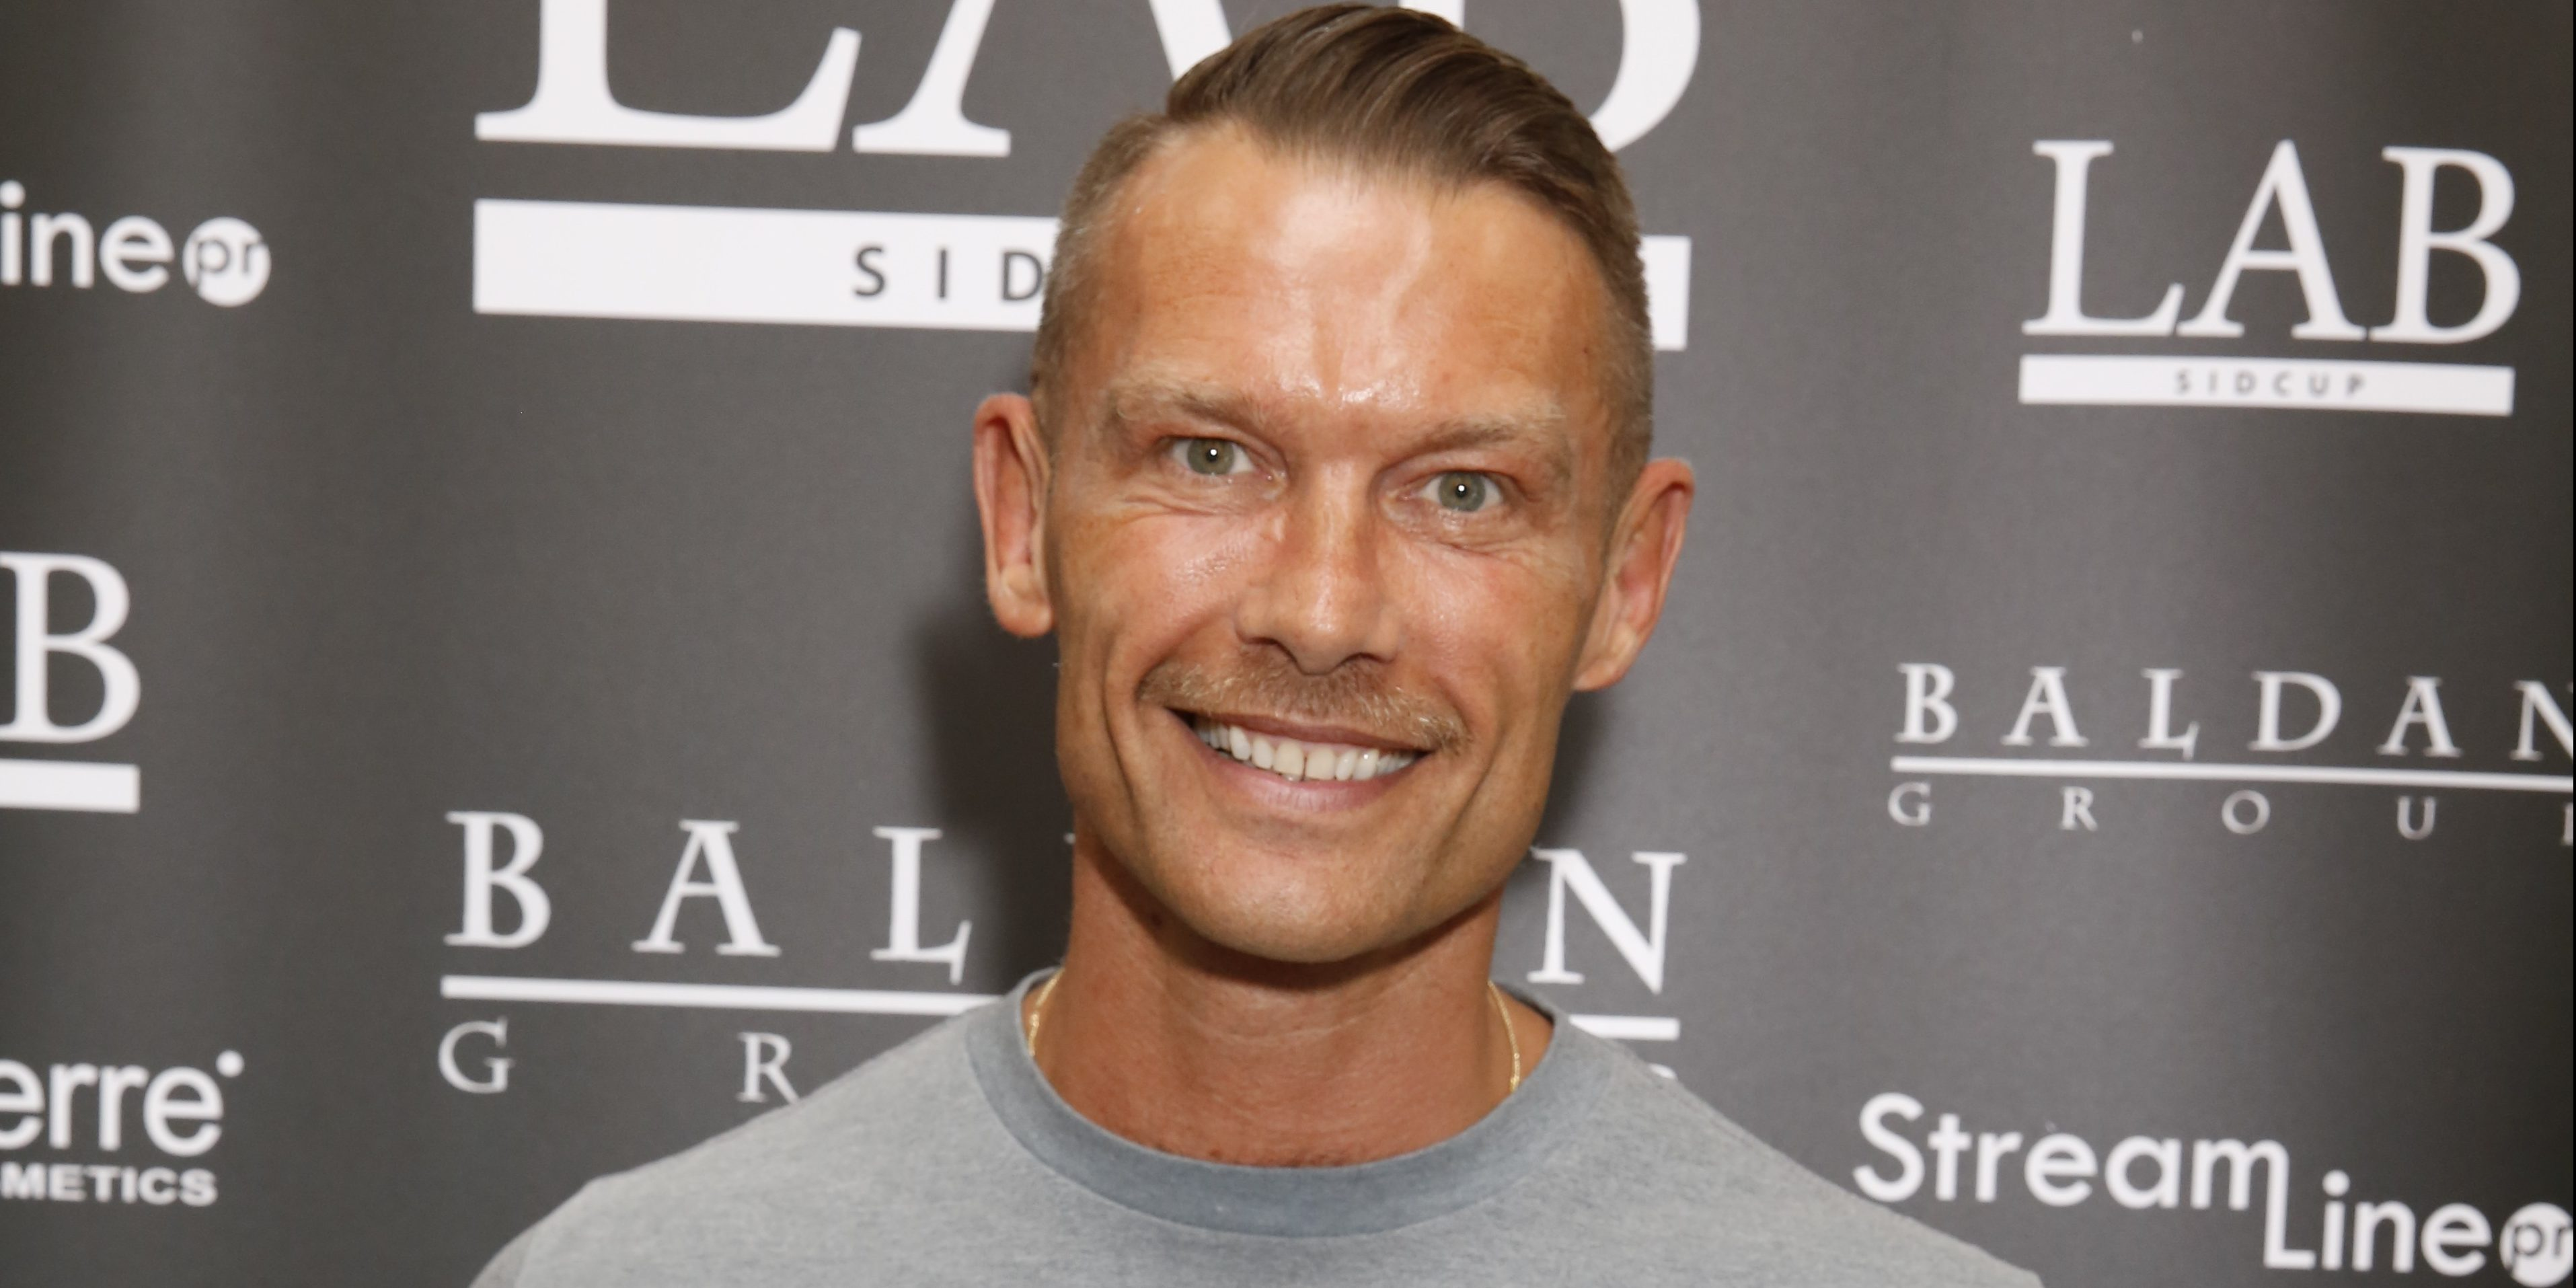 Former EastEnders actor John Partridge looks completely different as he appears on Loose Women